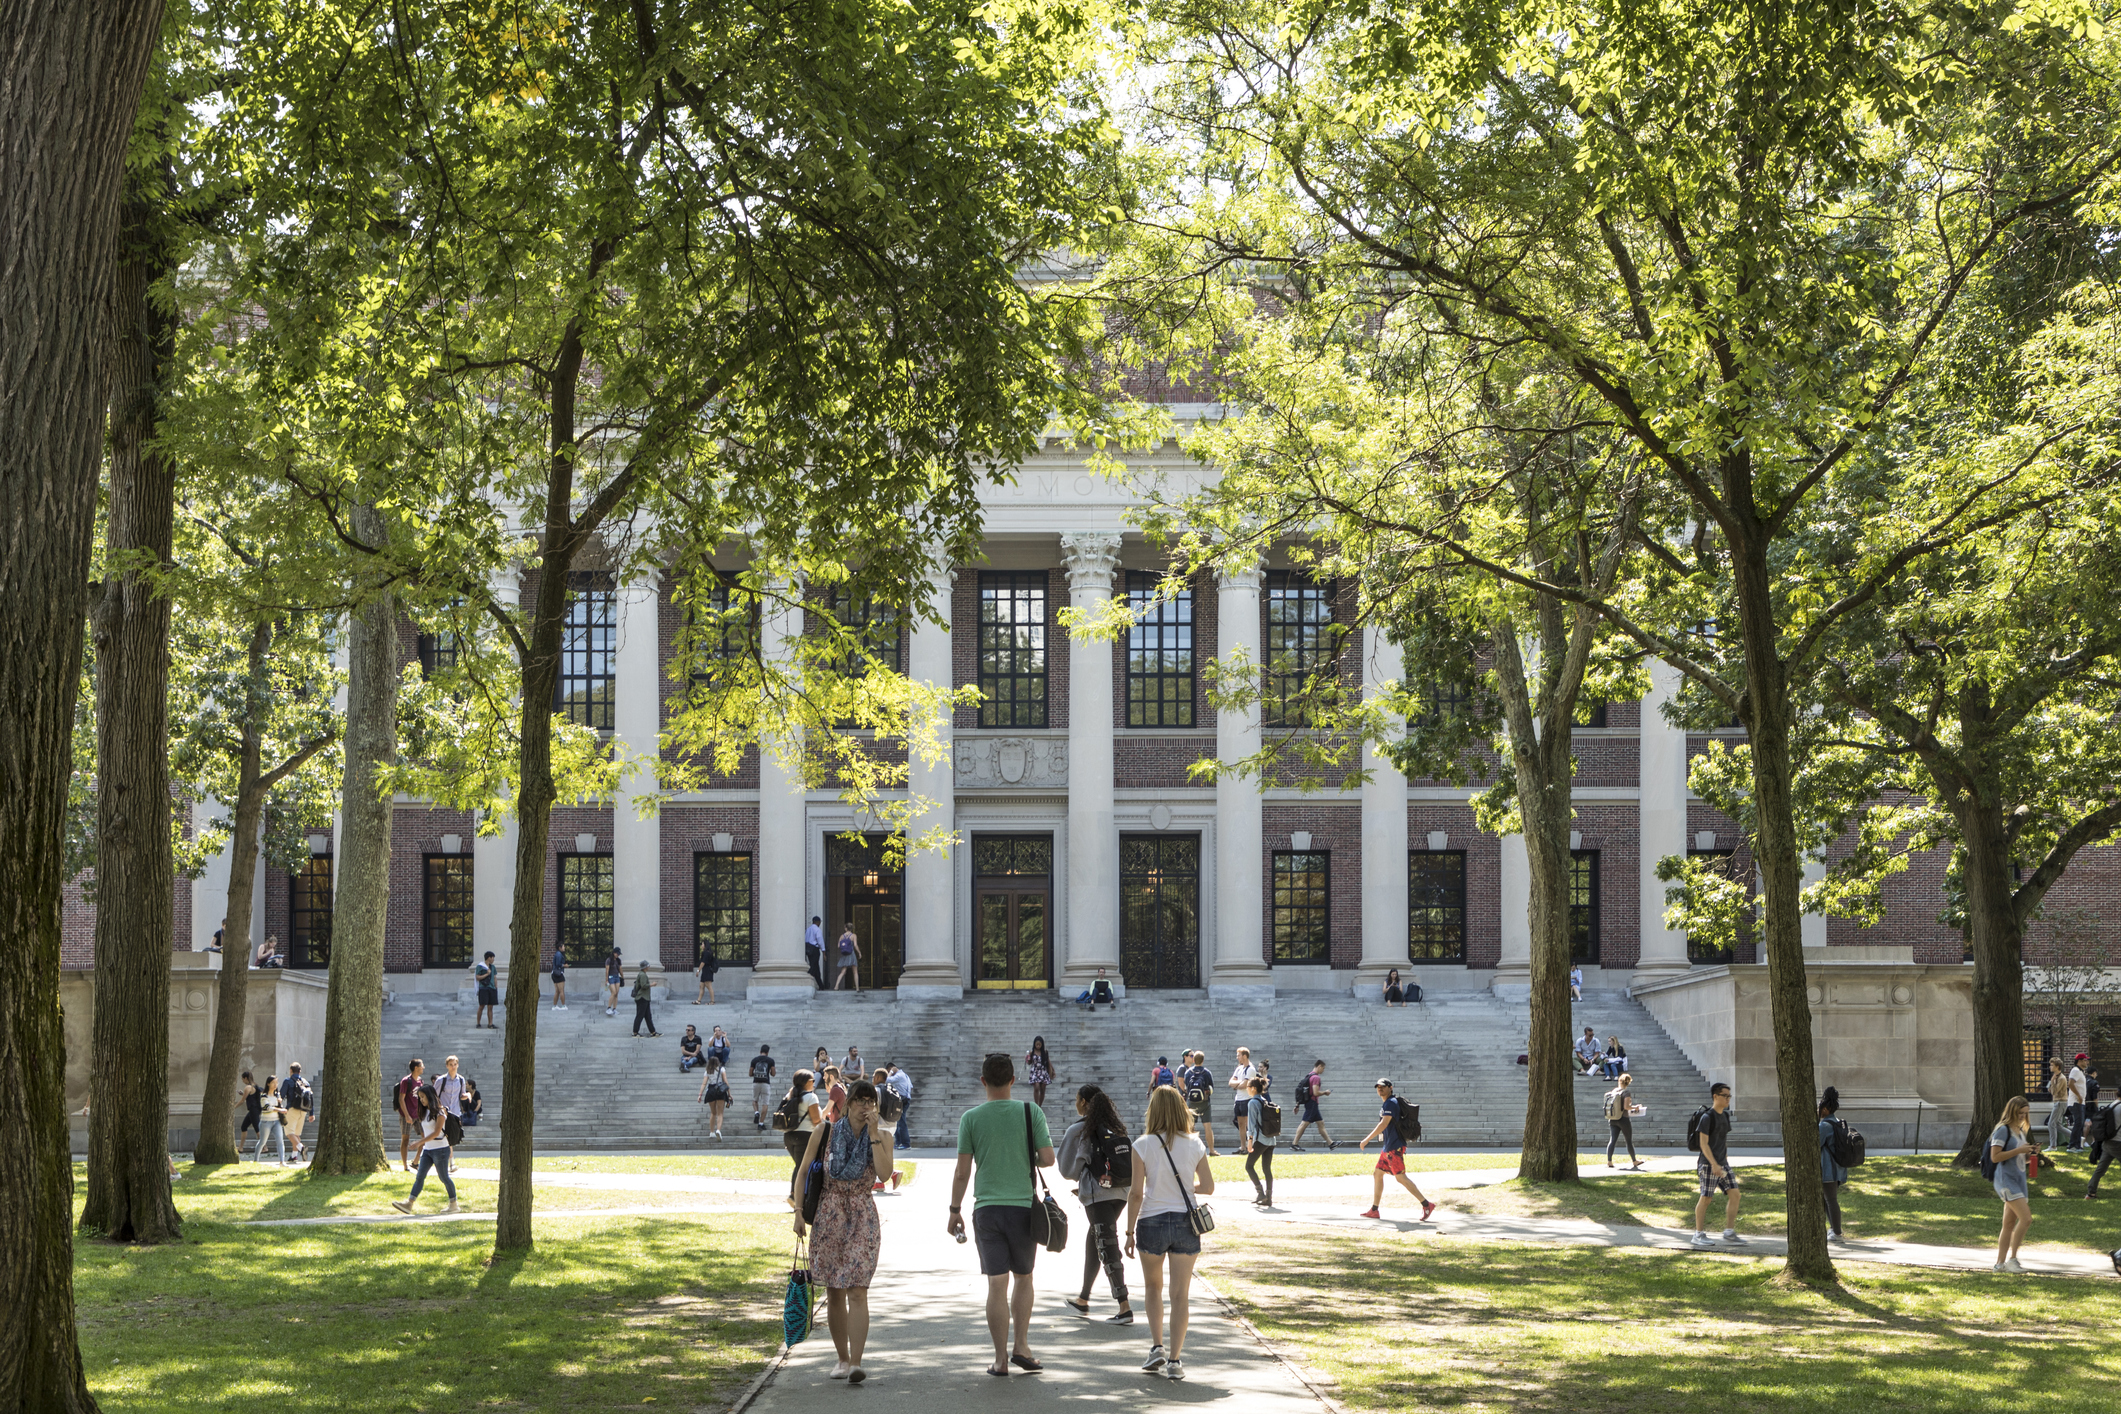 Students-and-tourists-rest-in-lawn-chairs-in-Harvard-Yard,-the-open-old-heart-of-Harvard-University-campus-859884294_2125x1416.jpeg